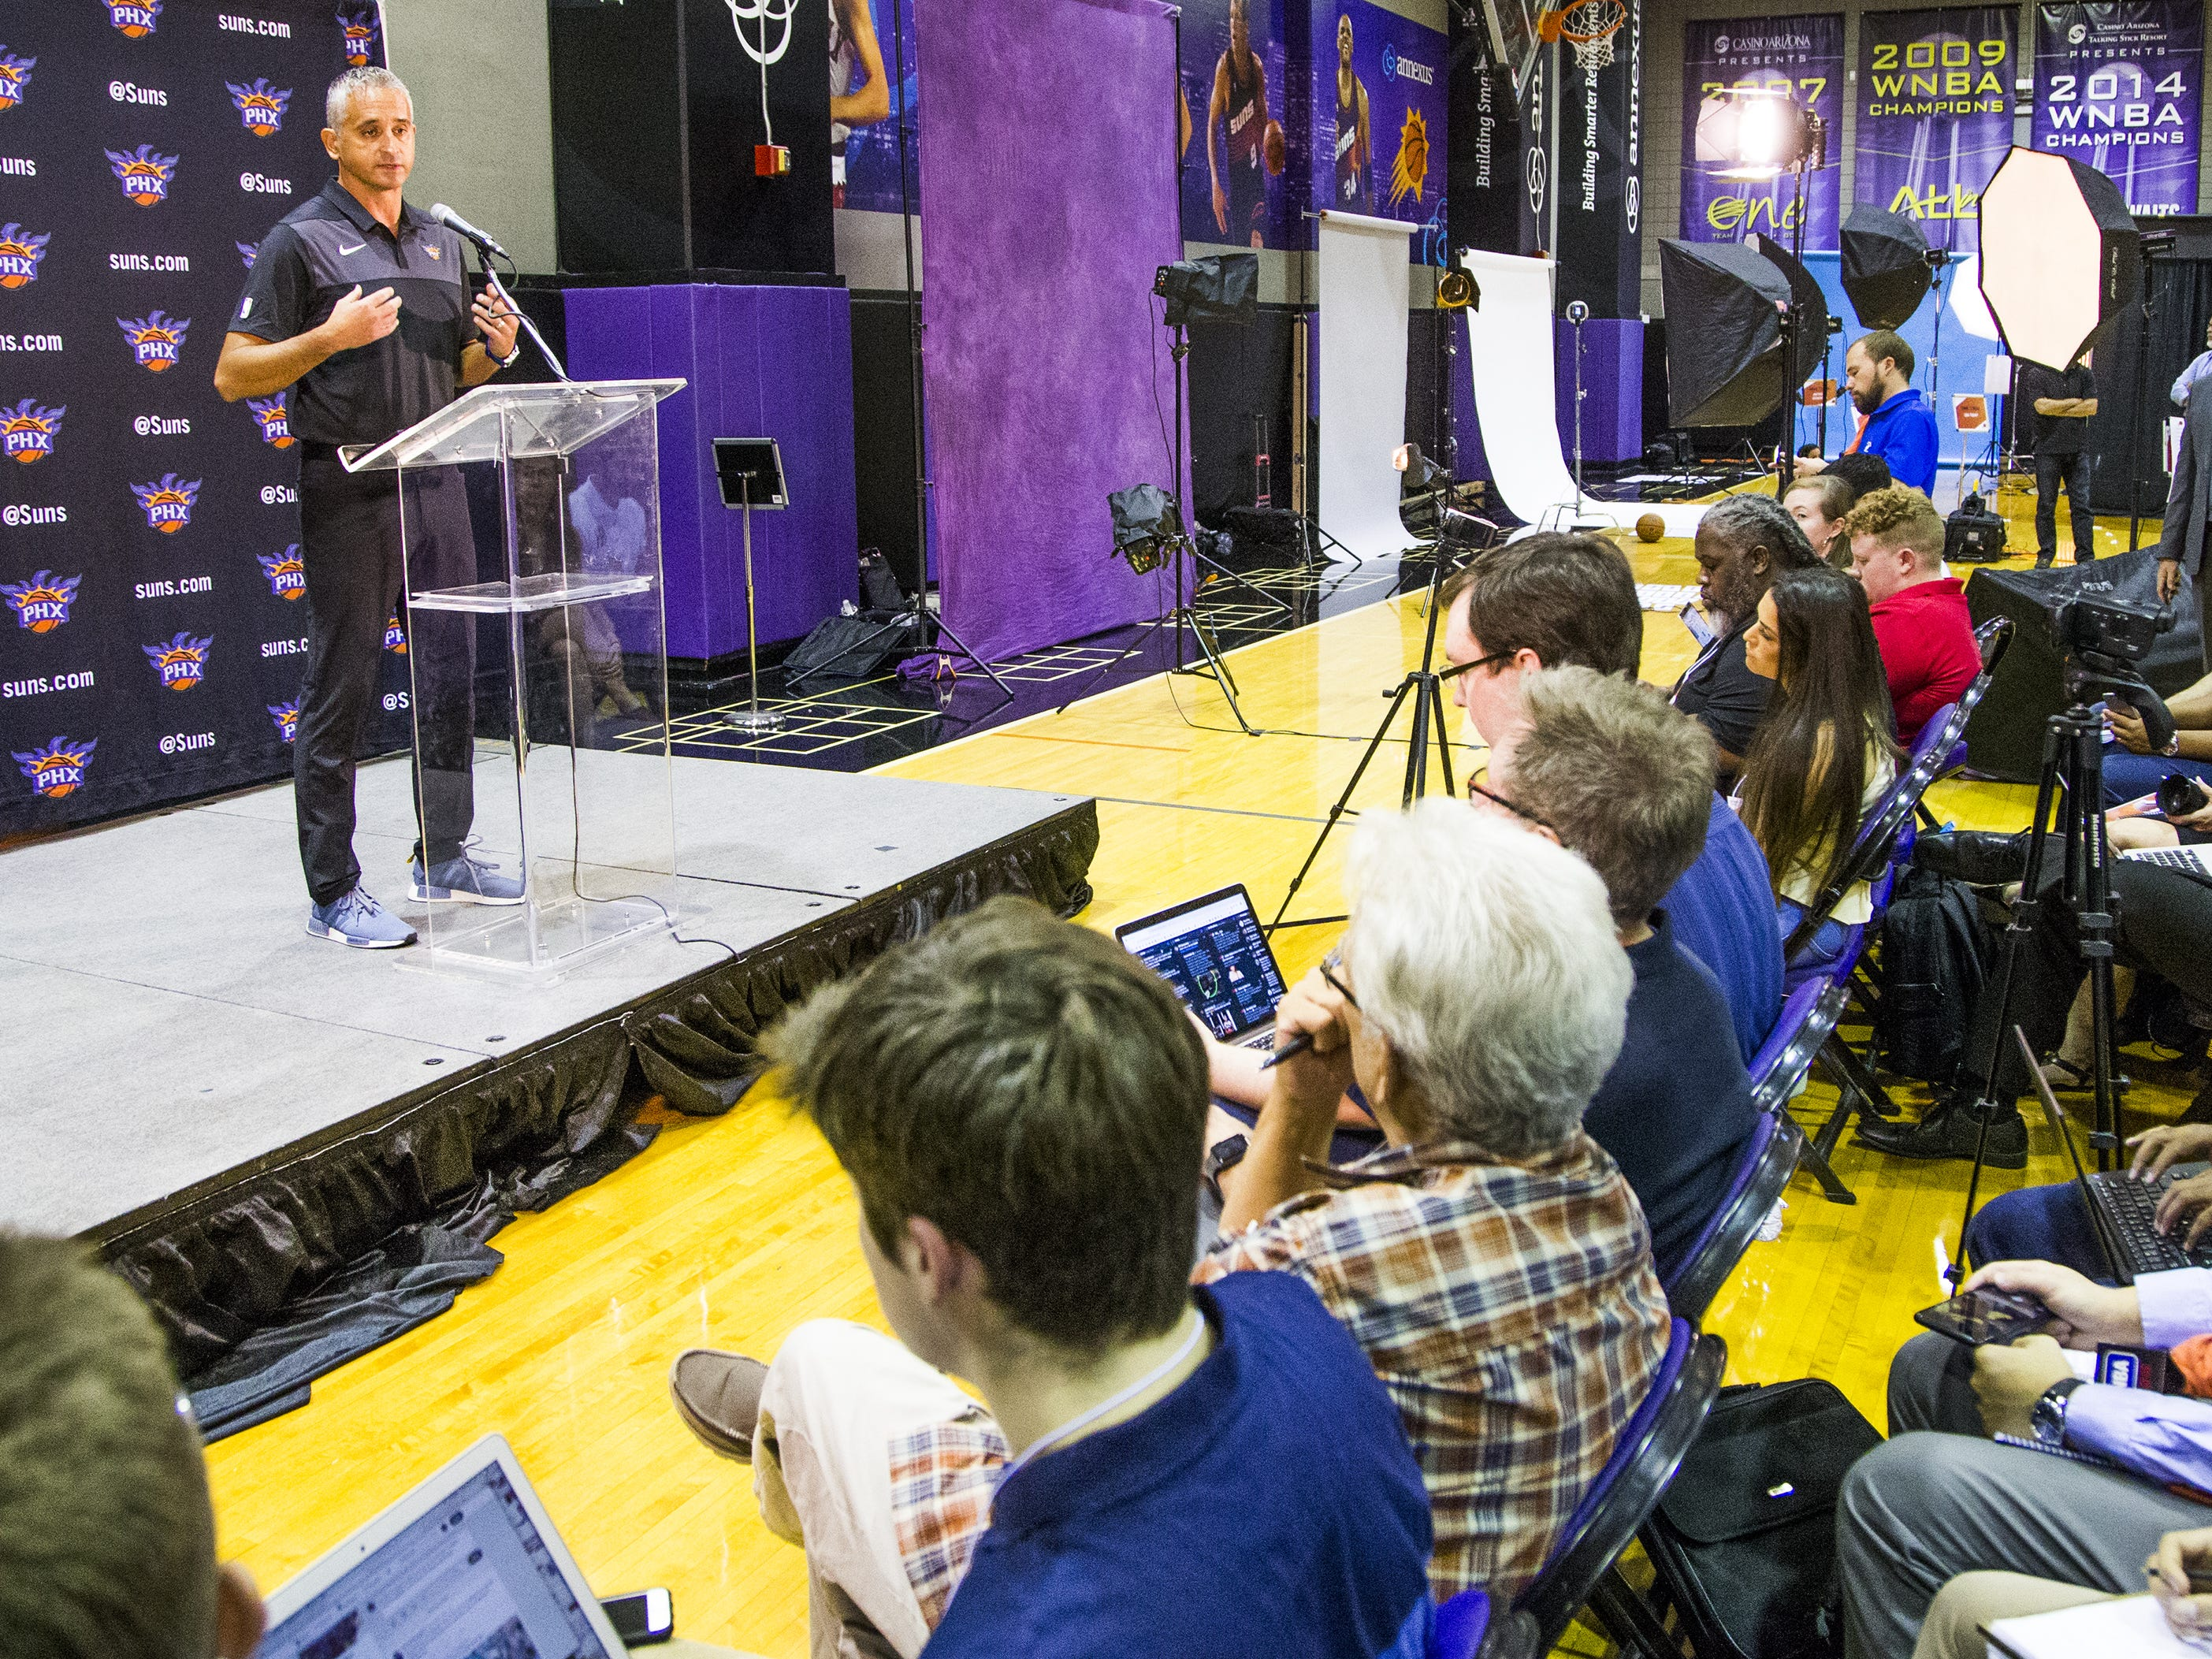 Igor Kokoskov, head coach for the Phoenix Suns, addresses the media at Phoenix Suns Media Day at Talking Stick Resort Arena in Phoenix, Monday, September 24, 2018.